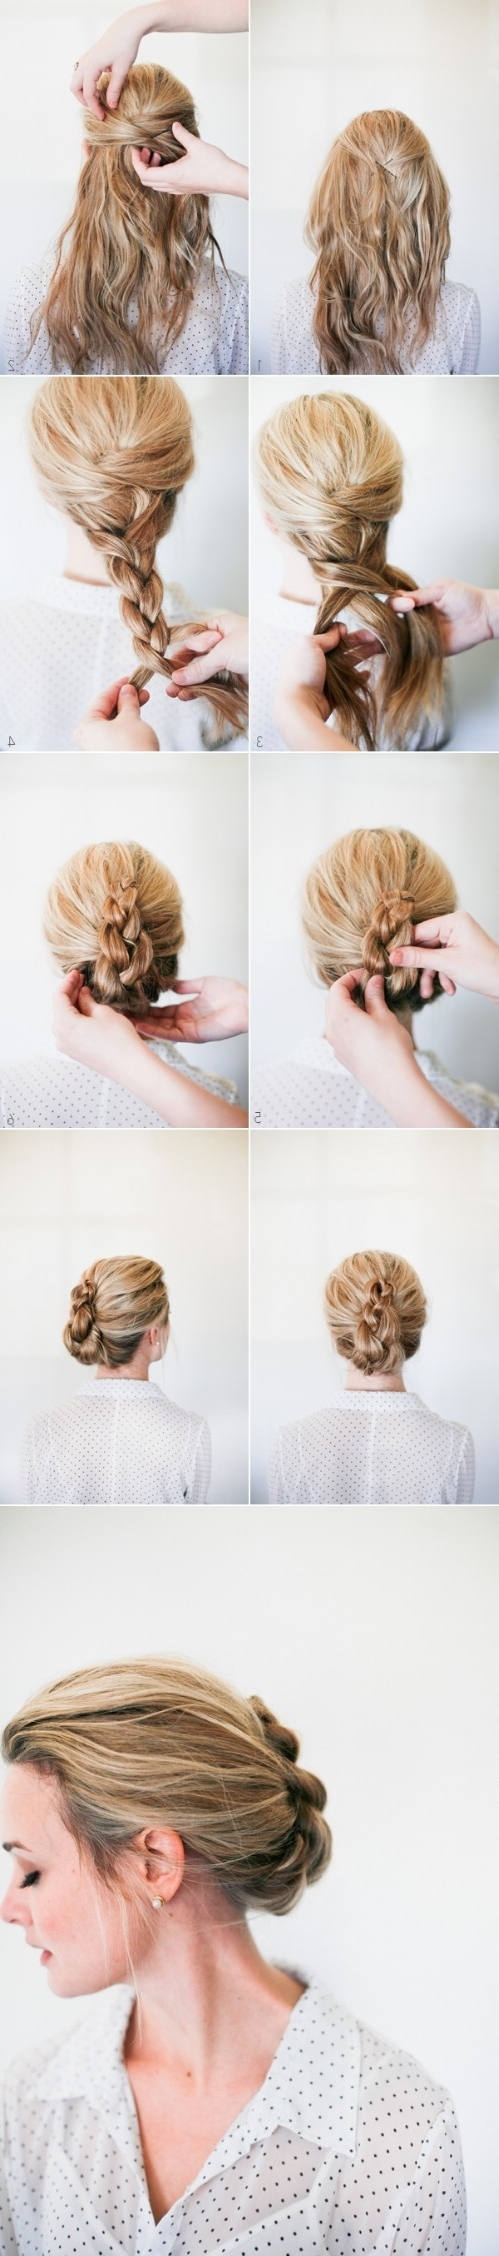 20 Gorgeous 5 Minute Hairstyles To Save You Some Snooze Time – Diy In Well Liked Romantic Twisted Hairdo Hairstyles (View 10 of 20)